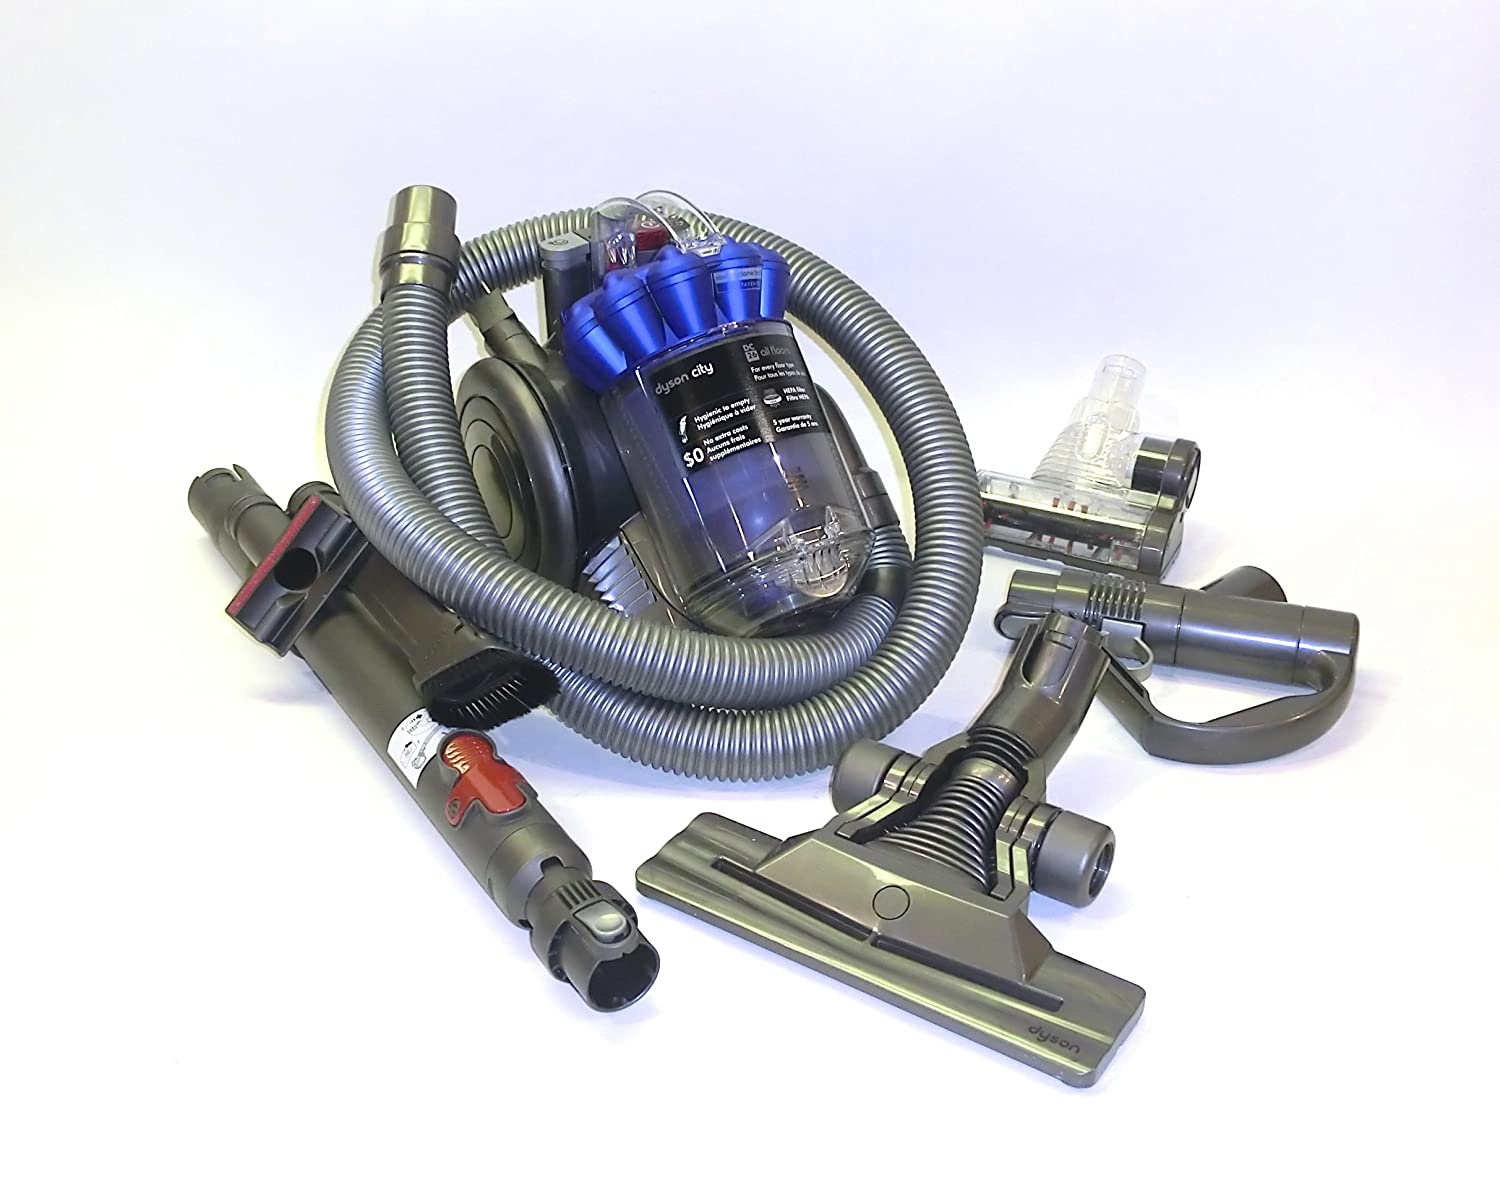 Amazon.com - Dyson DC26 Multi floor compact canister vacuum cleaner -  Refurbished - Household Canister Vacuums